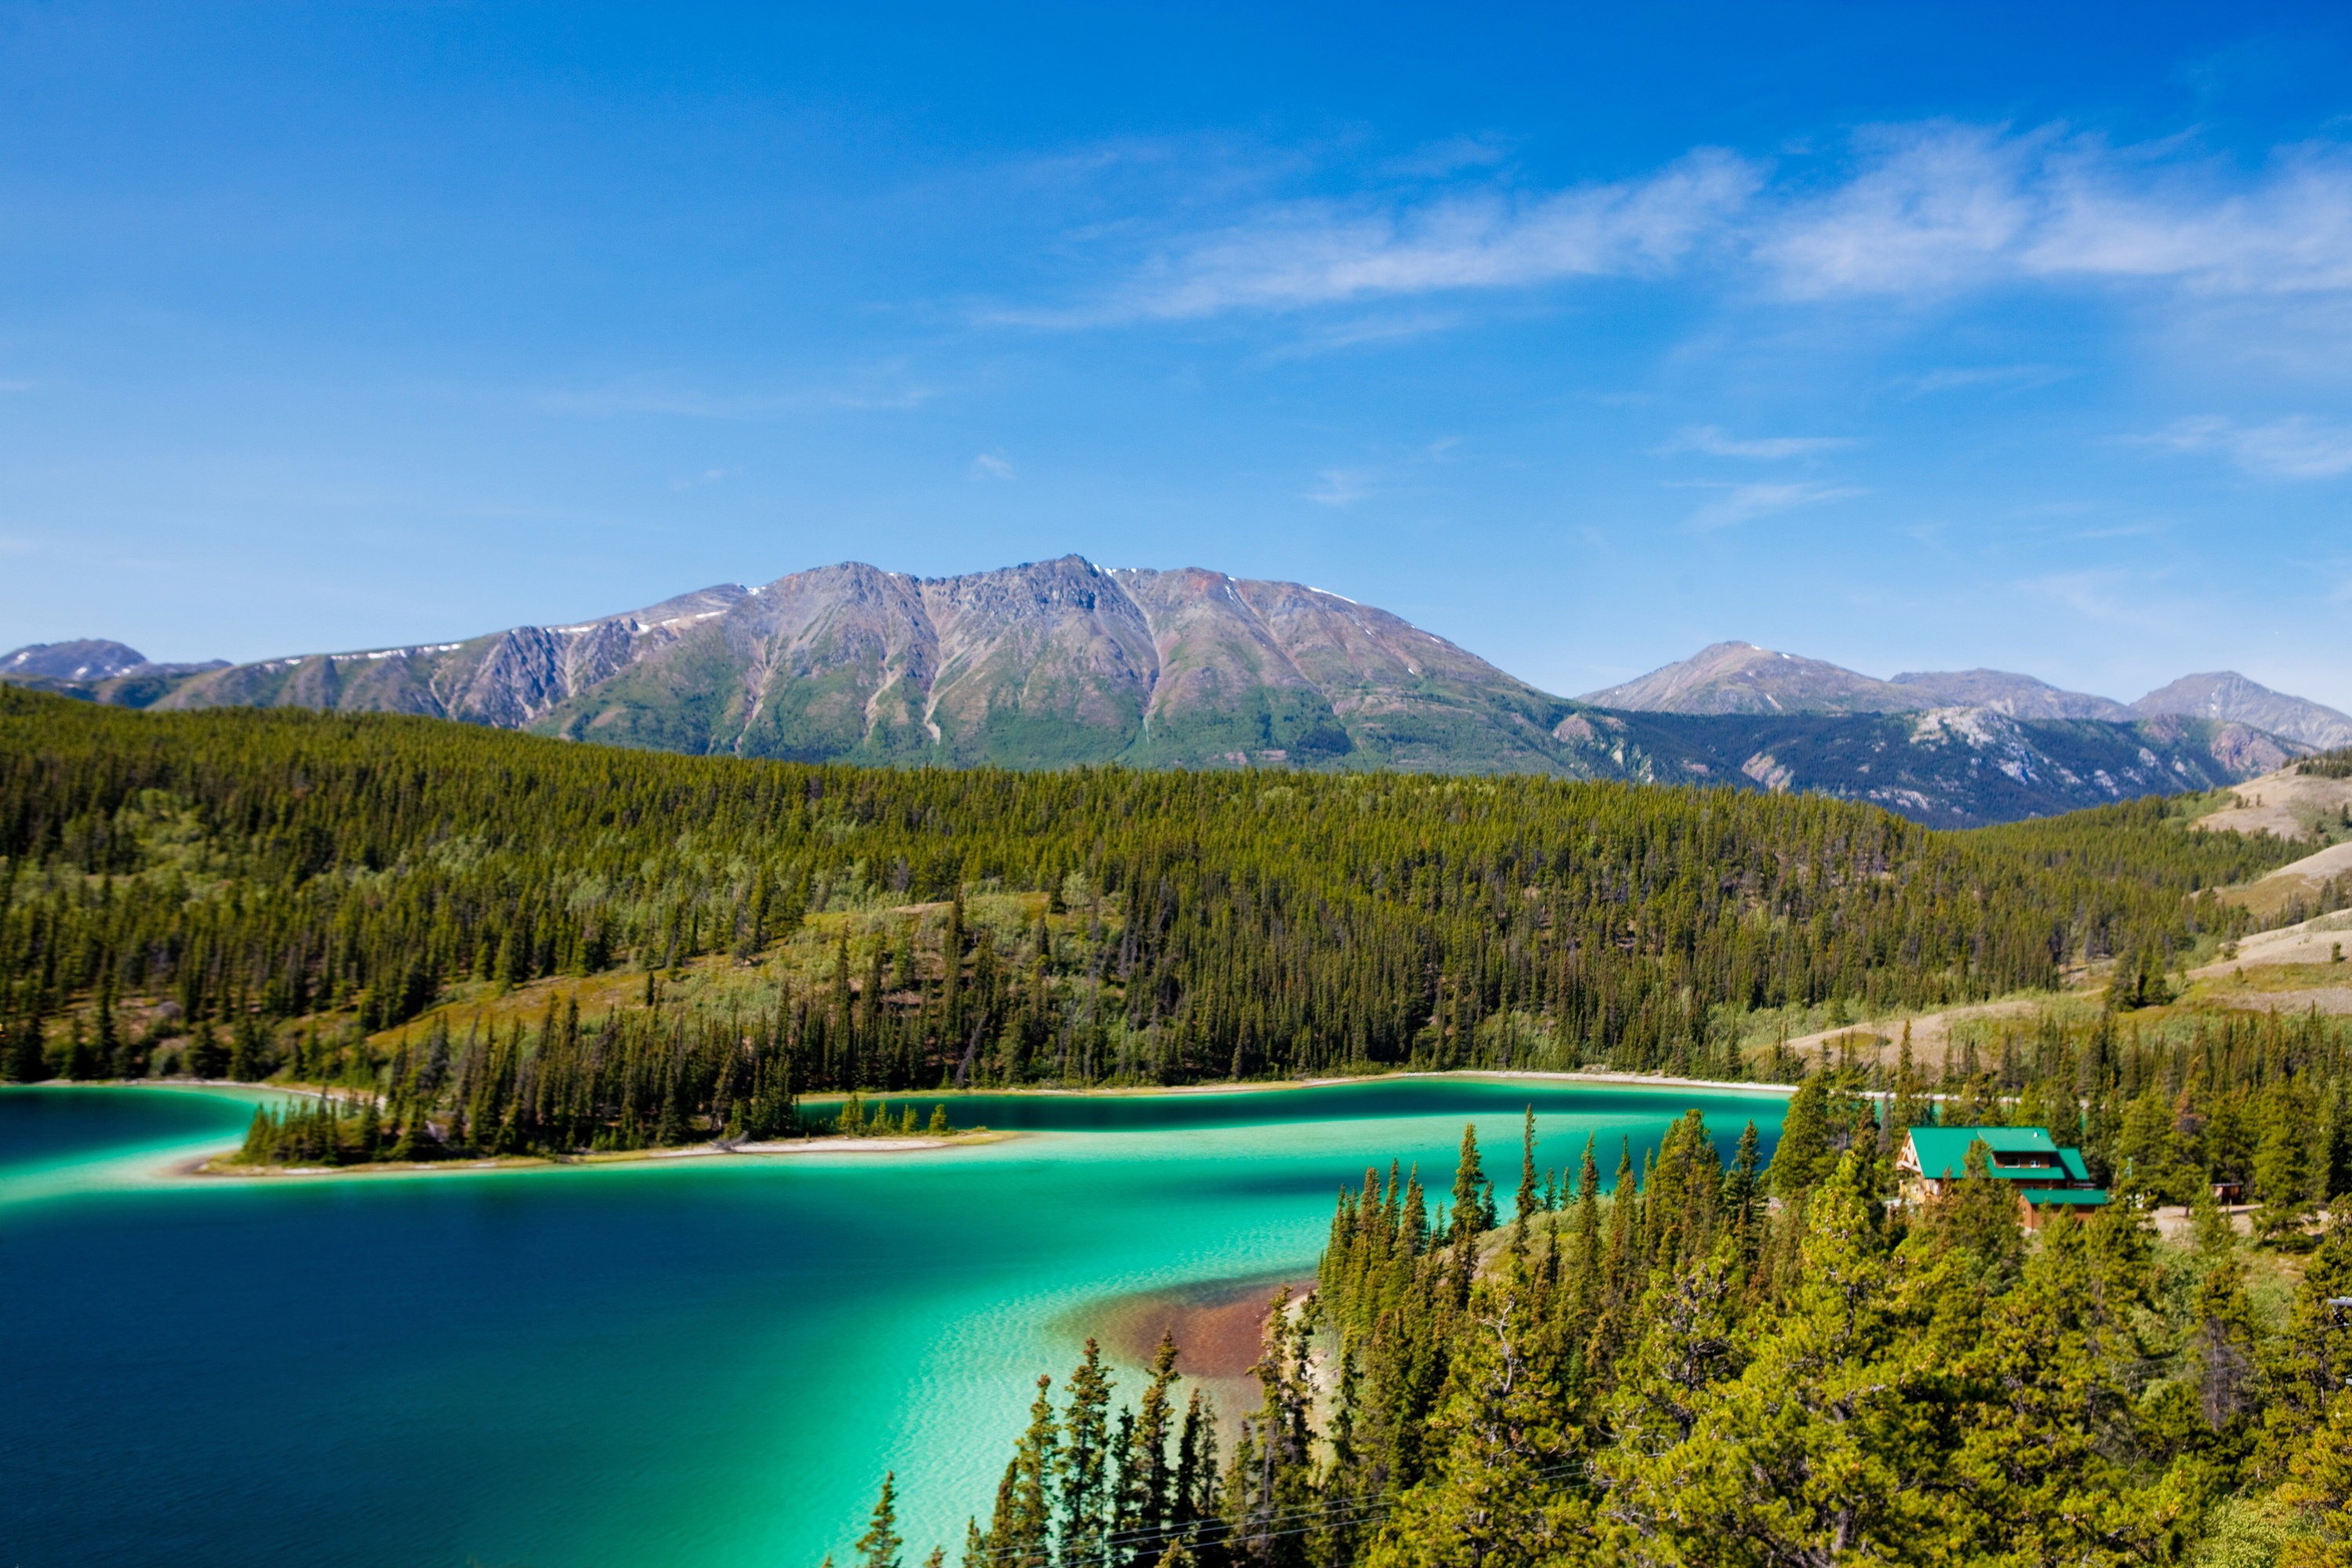 A wide view of Emerald Lake from an adjacent highway